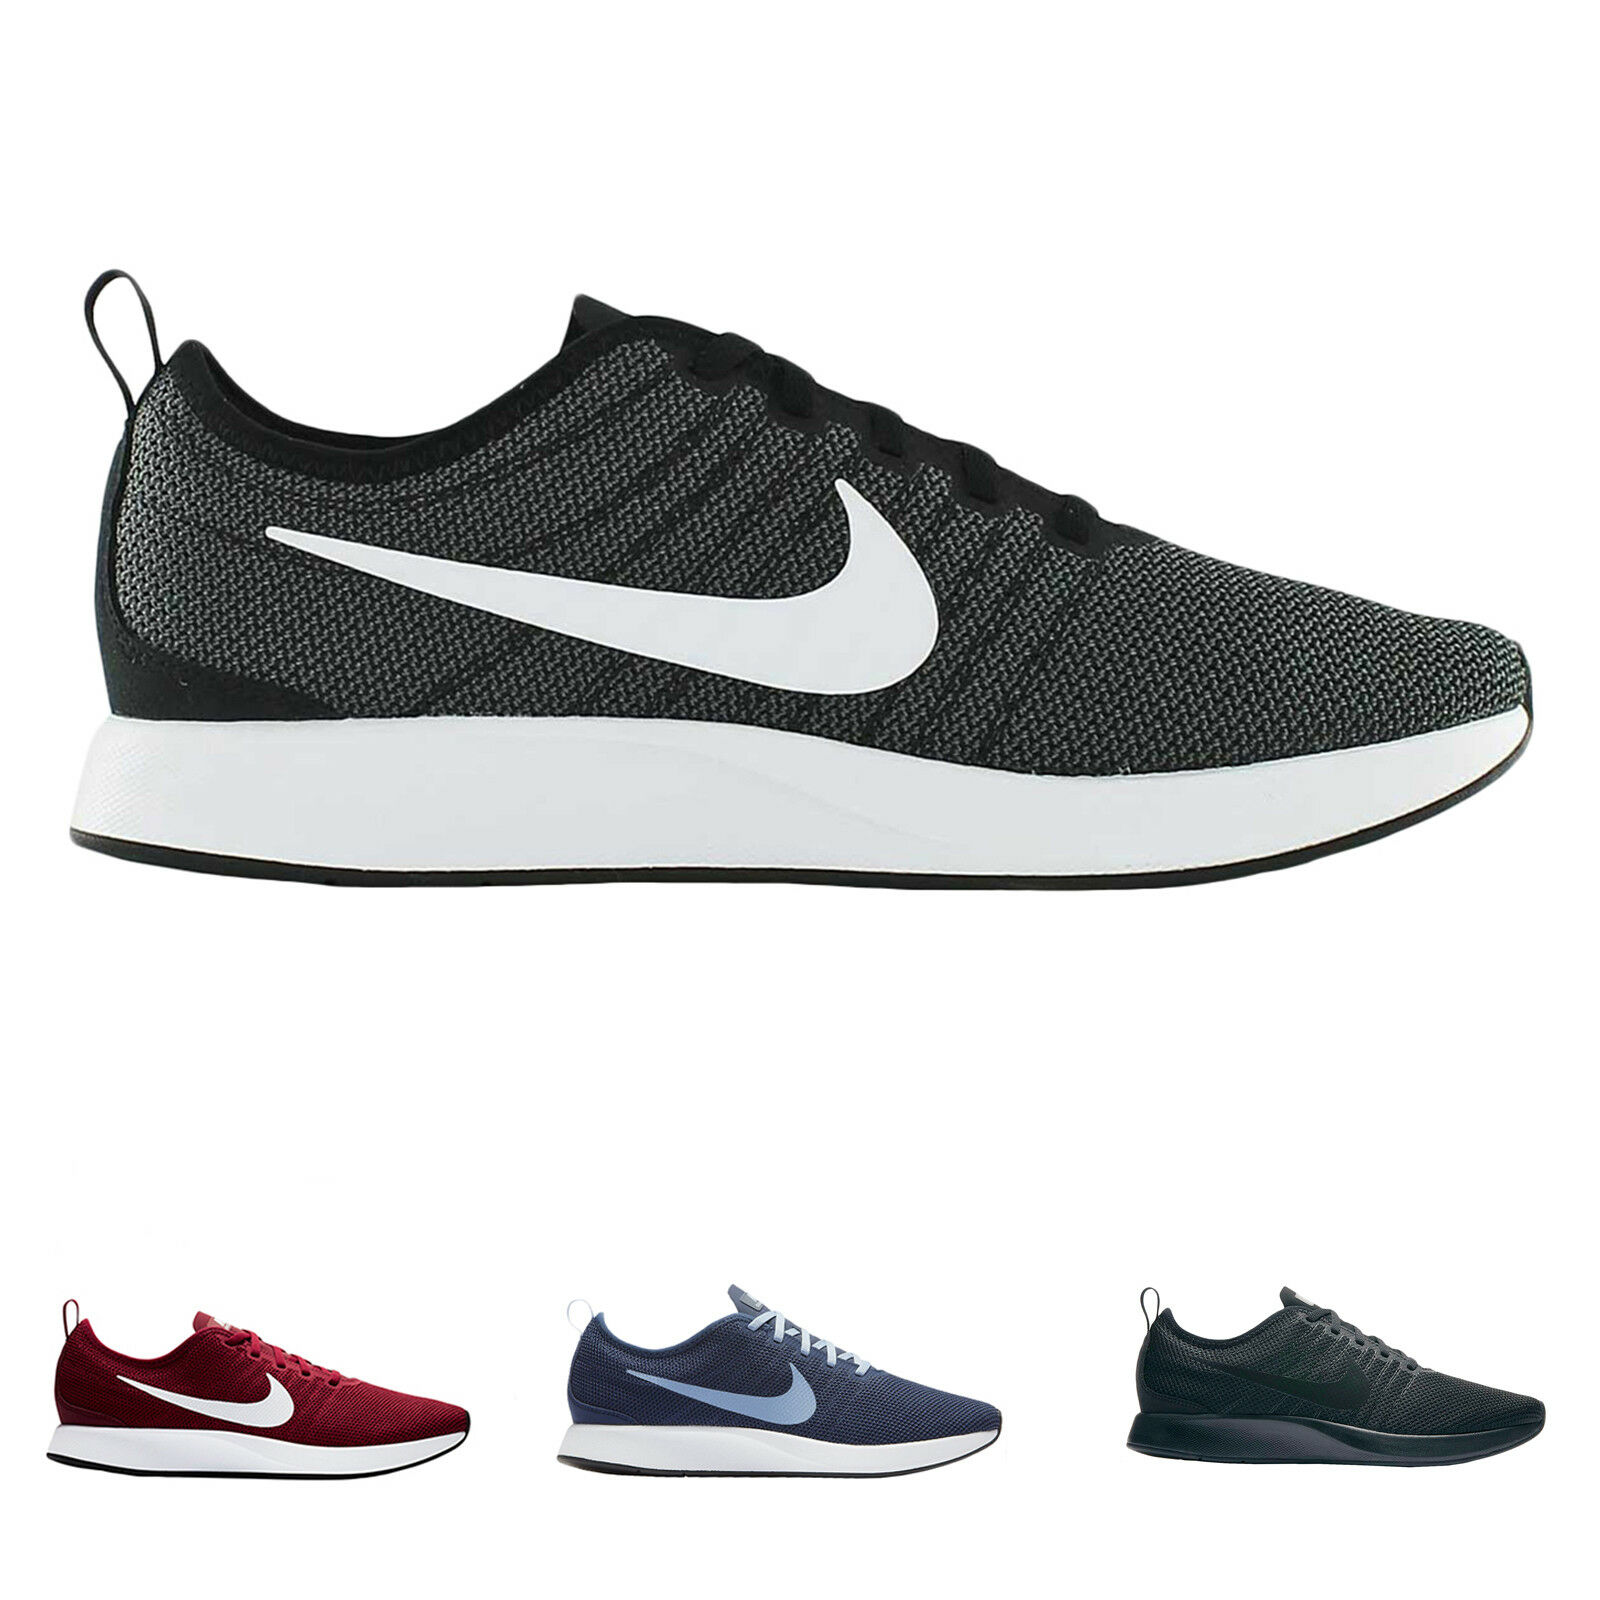 Nike Dualtone Racer Mesh Casual Lace-Up Low-Top Running Sneakers Mens Trainers